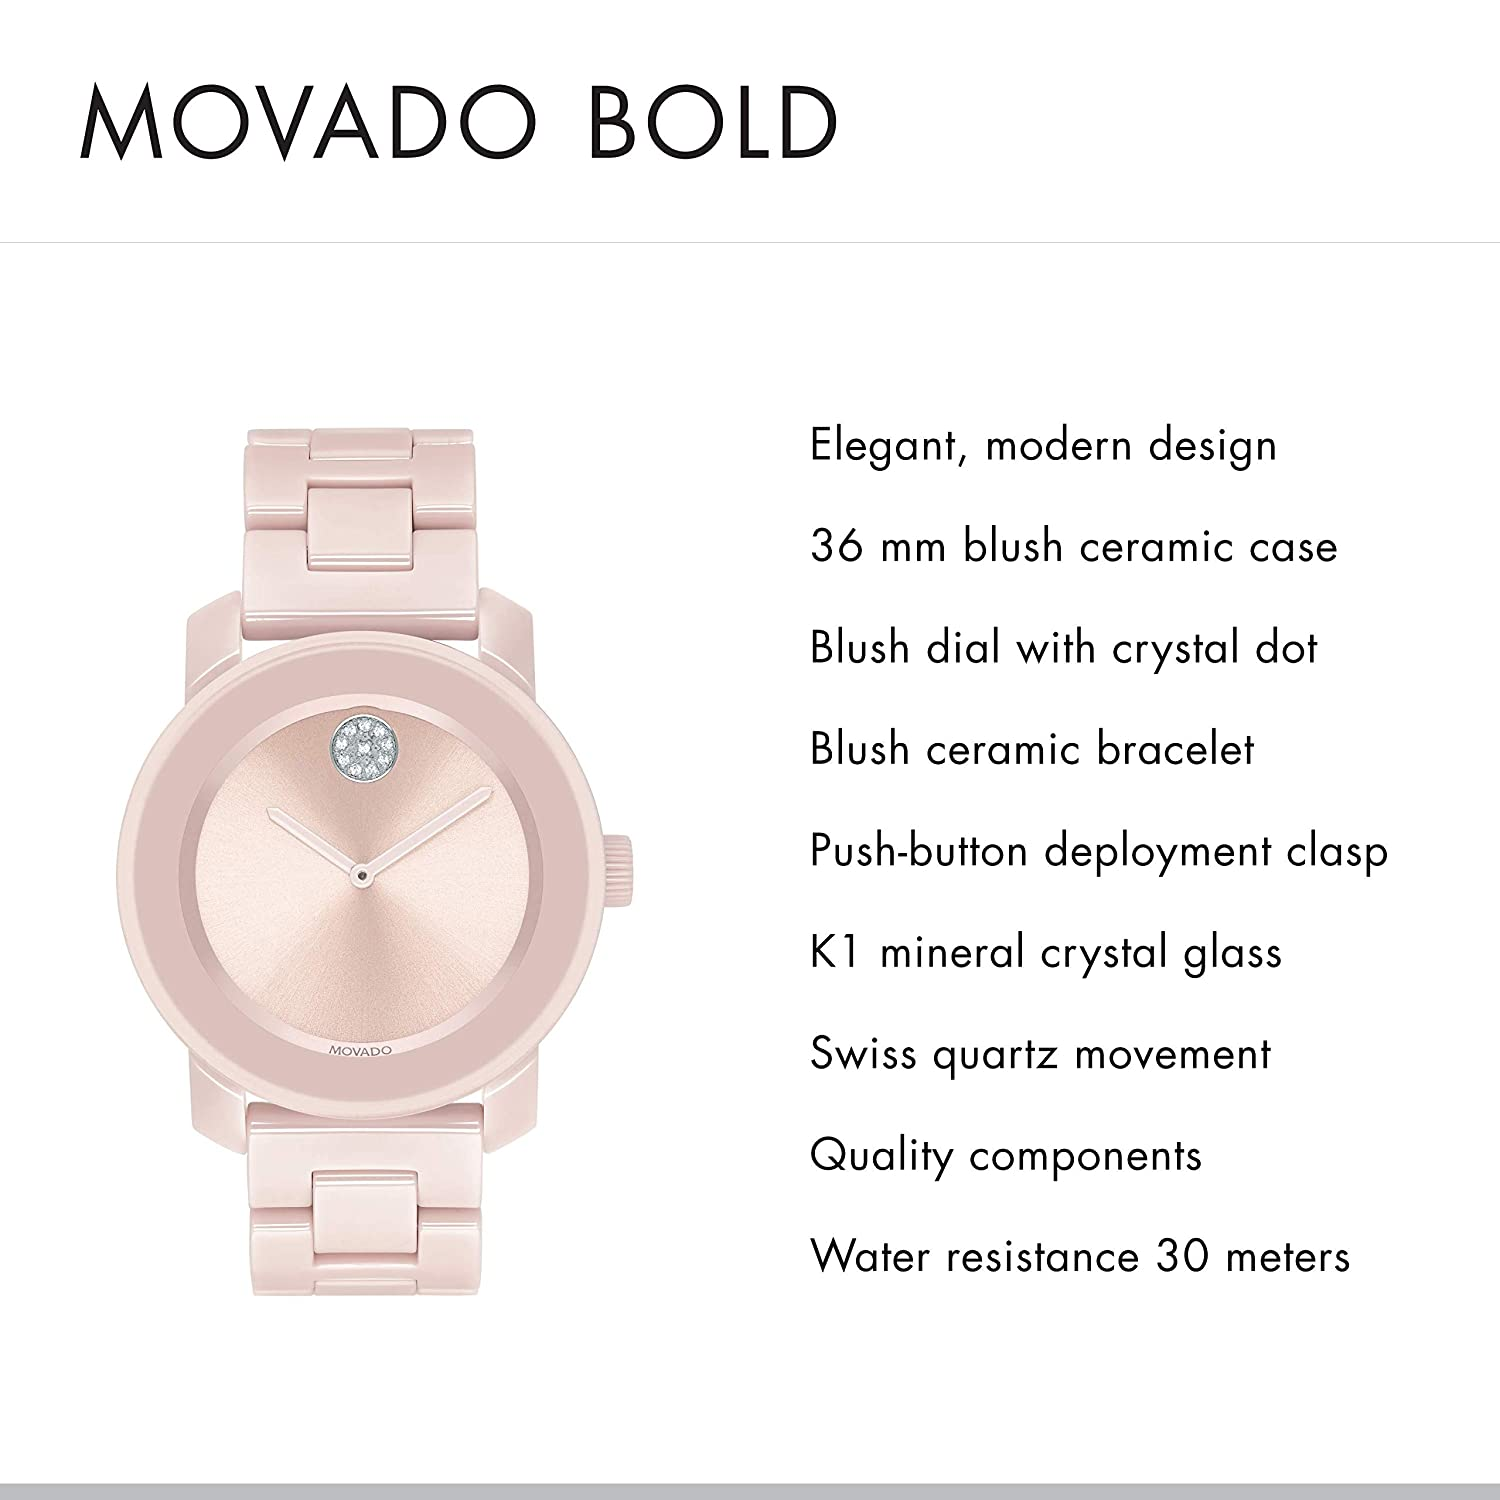 946e63995 Amazon.com: Movado Women's BOLD Ceramic Watch with a Crystal-Set Dot,  Pink/Silver (Model 3600536): Watches